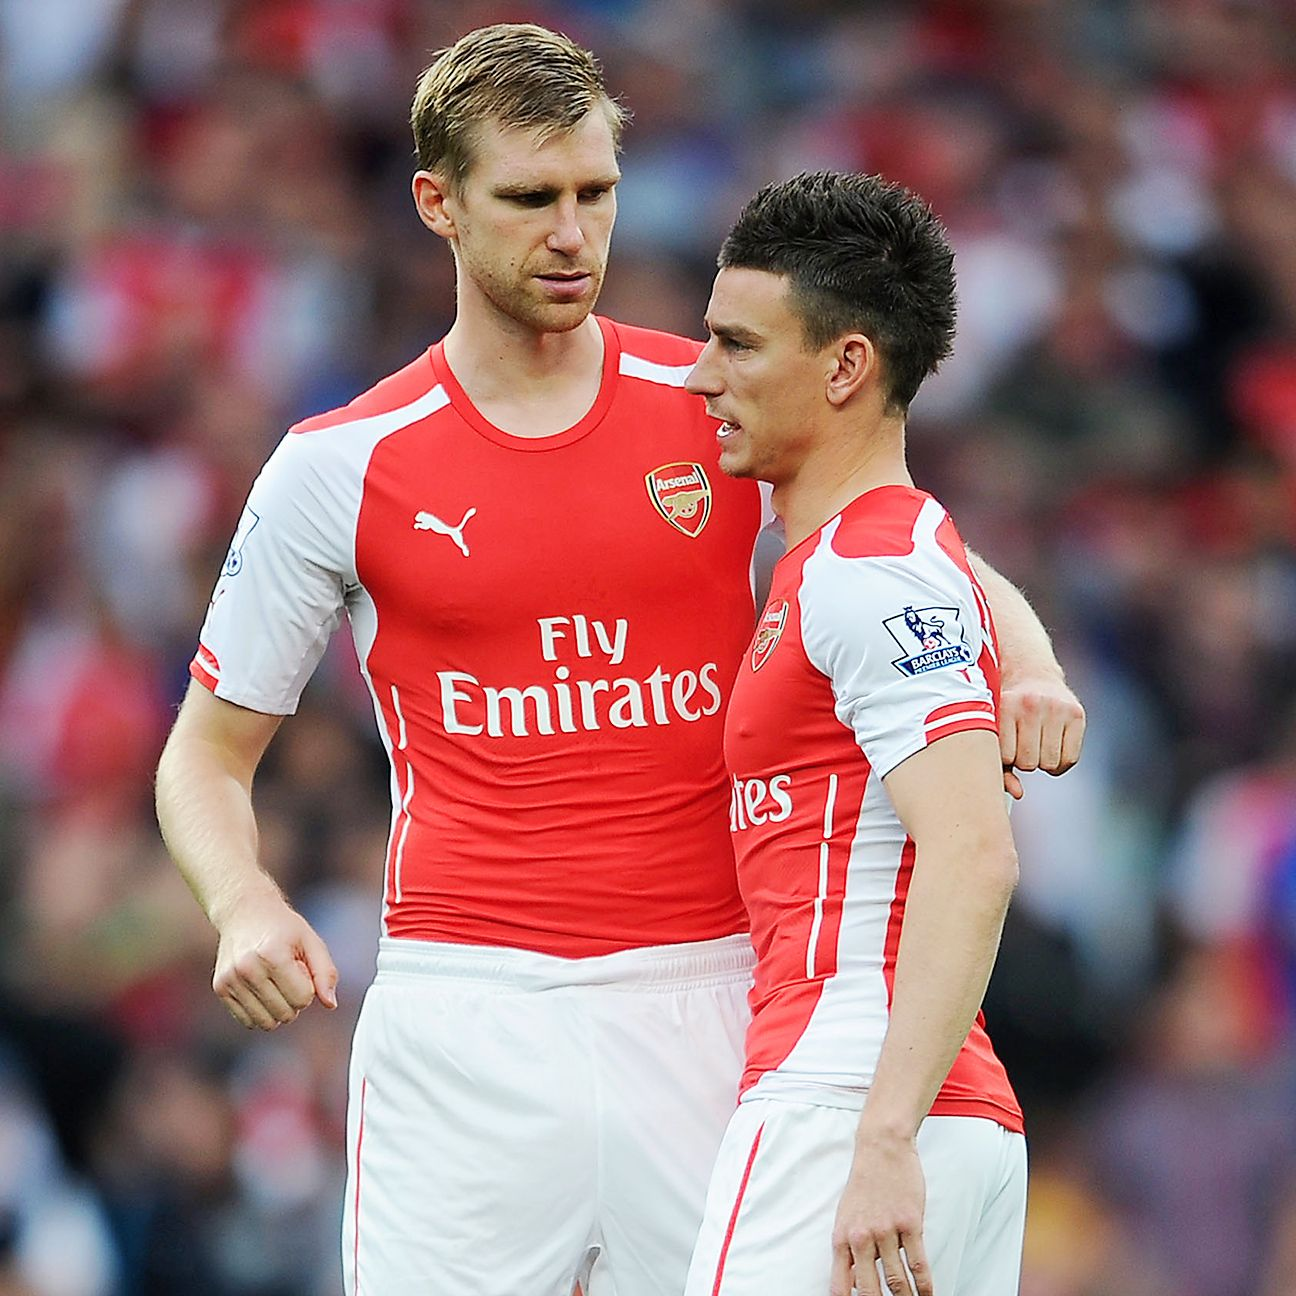 Laurent Koscielny, right, and Per Mertesacker have stepped up in the second half of the season.